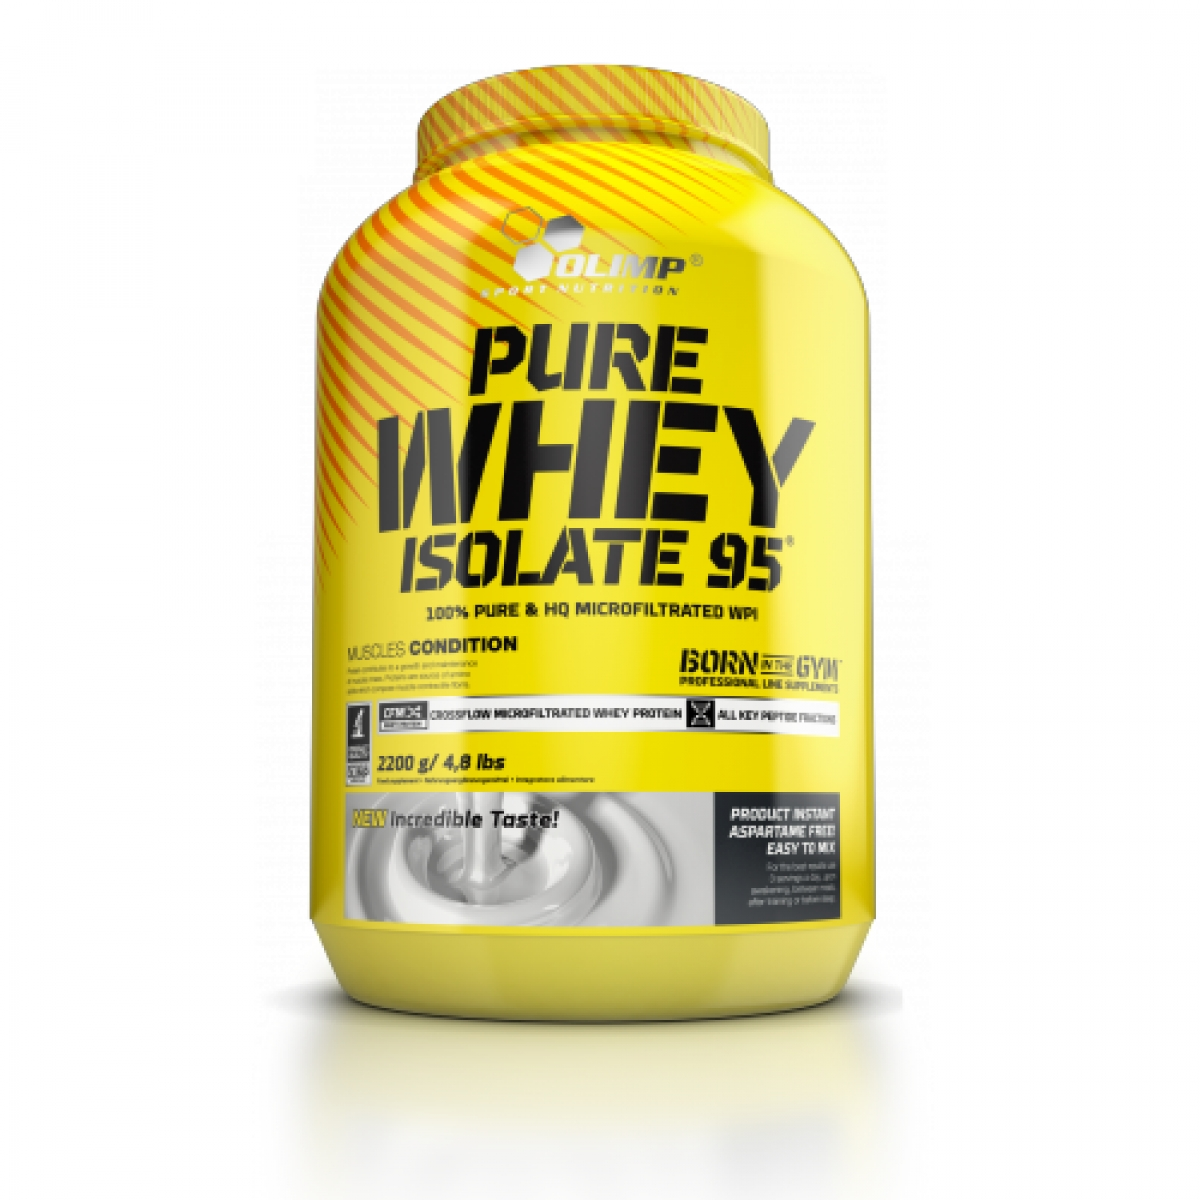 PURE WHEY ISOLATE 95, 2200 G